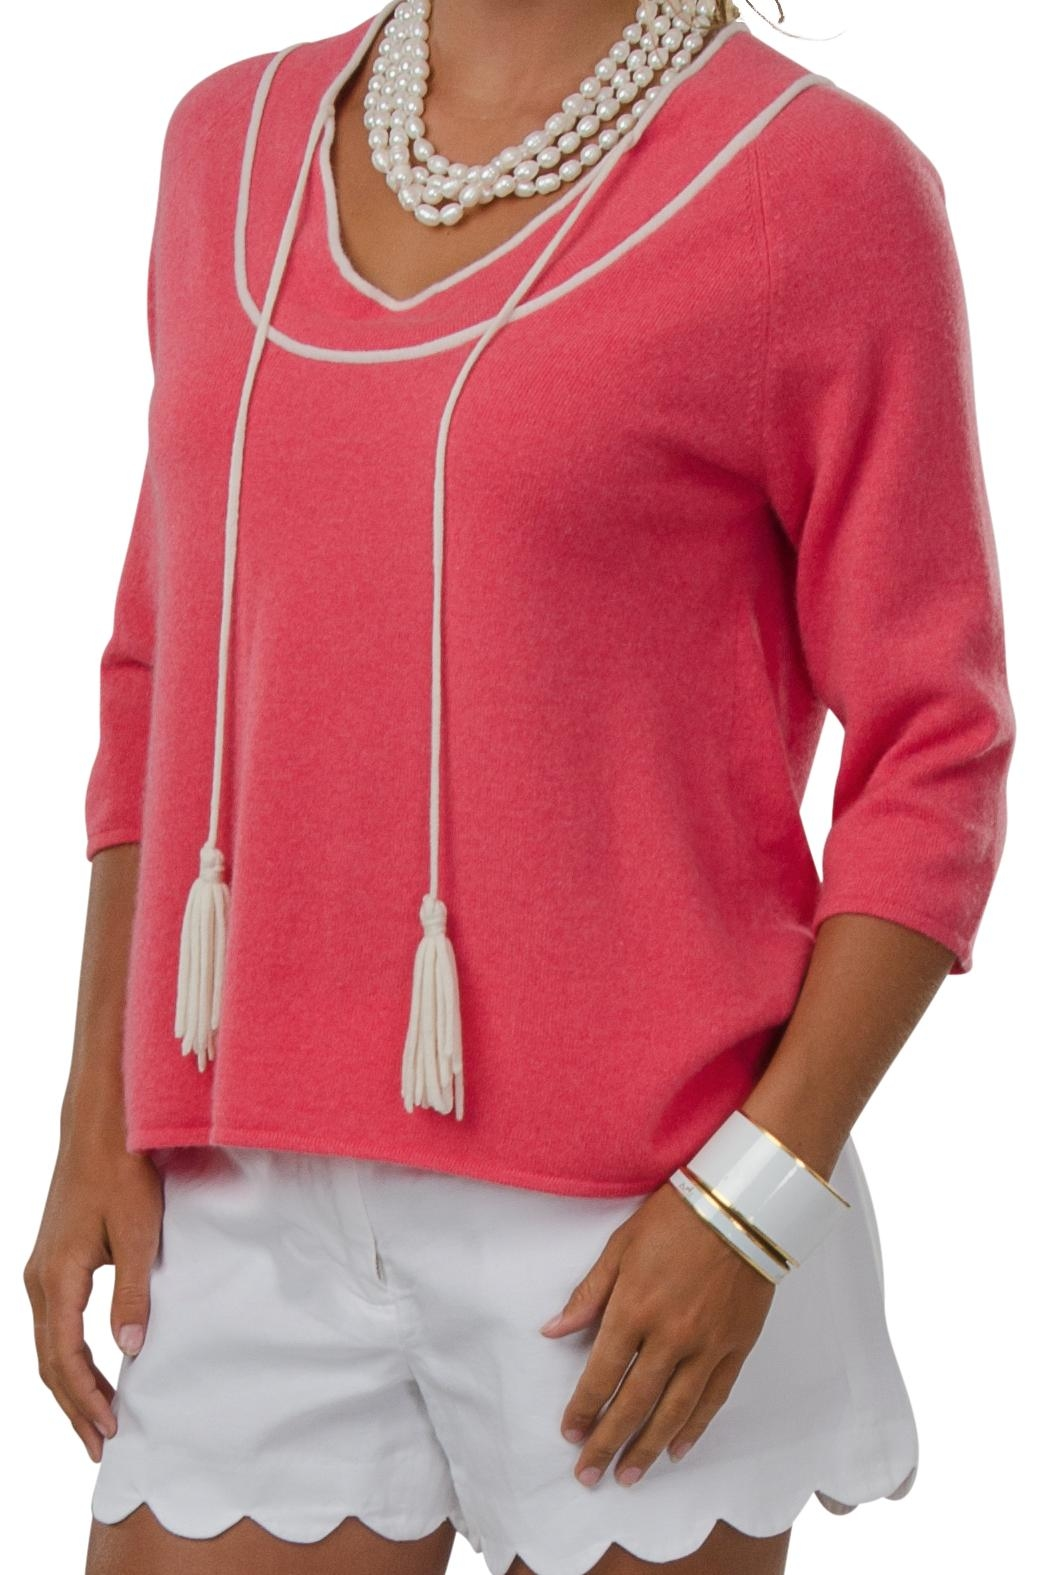 Cortland Park Cashmere Delray Sweater - Front Cropped Image